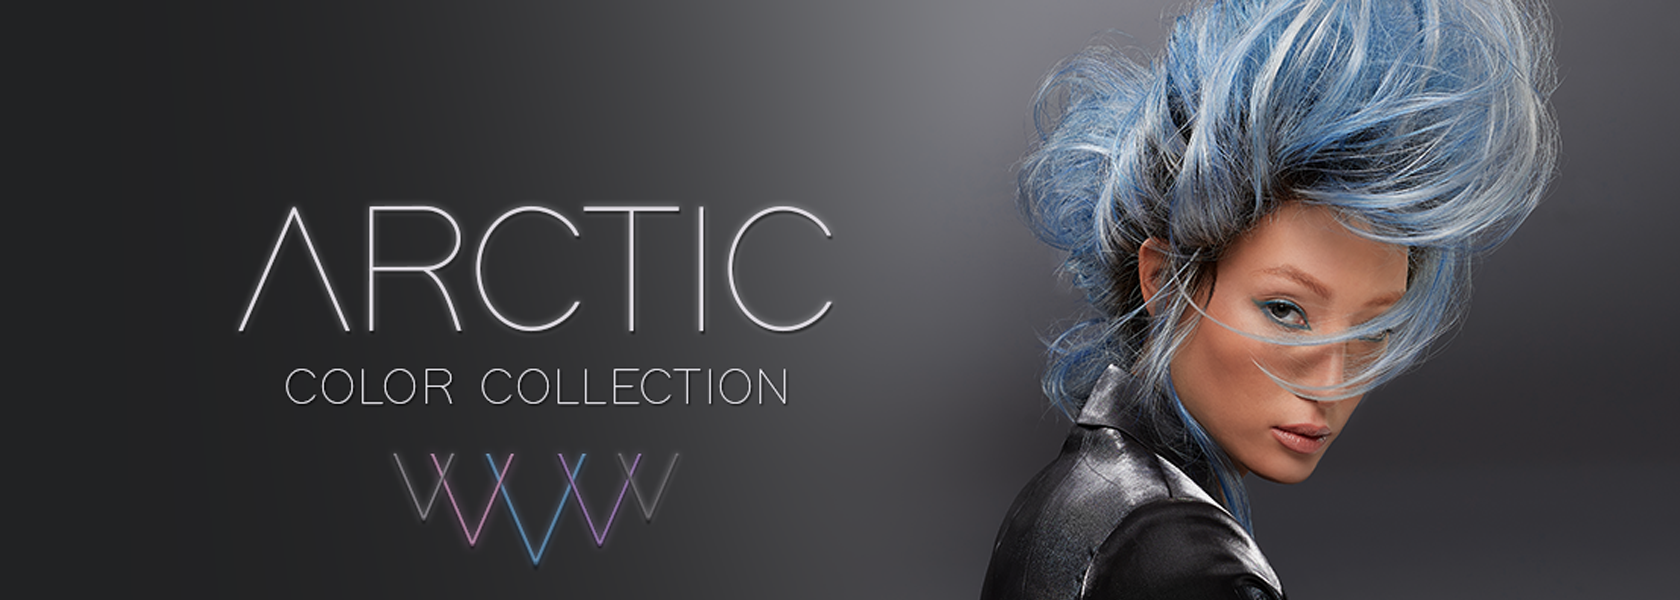 Arctic Color Collection